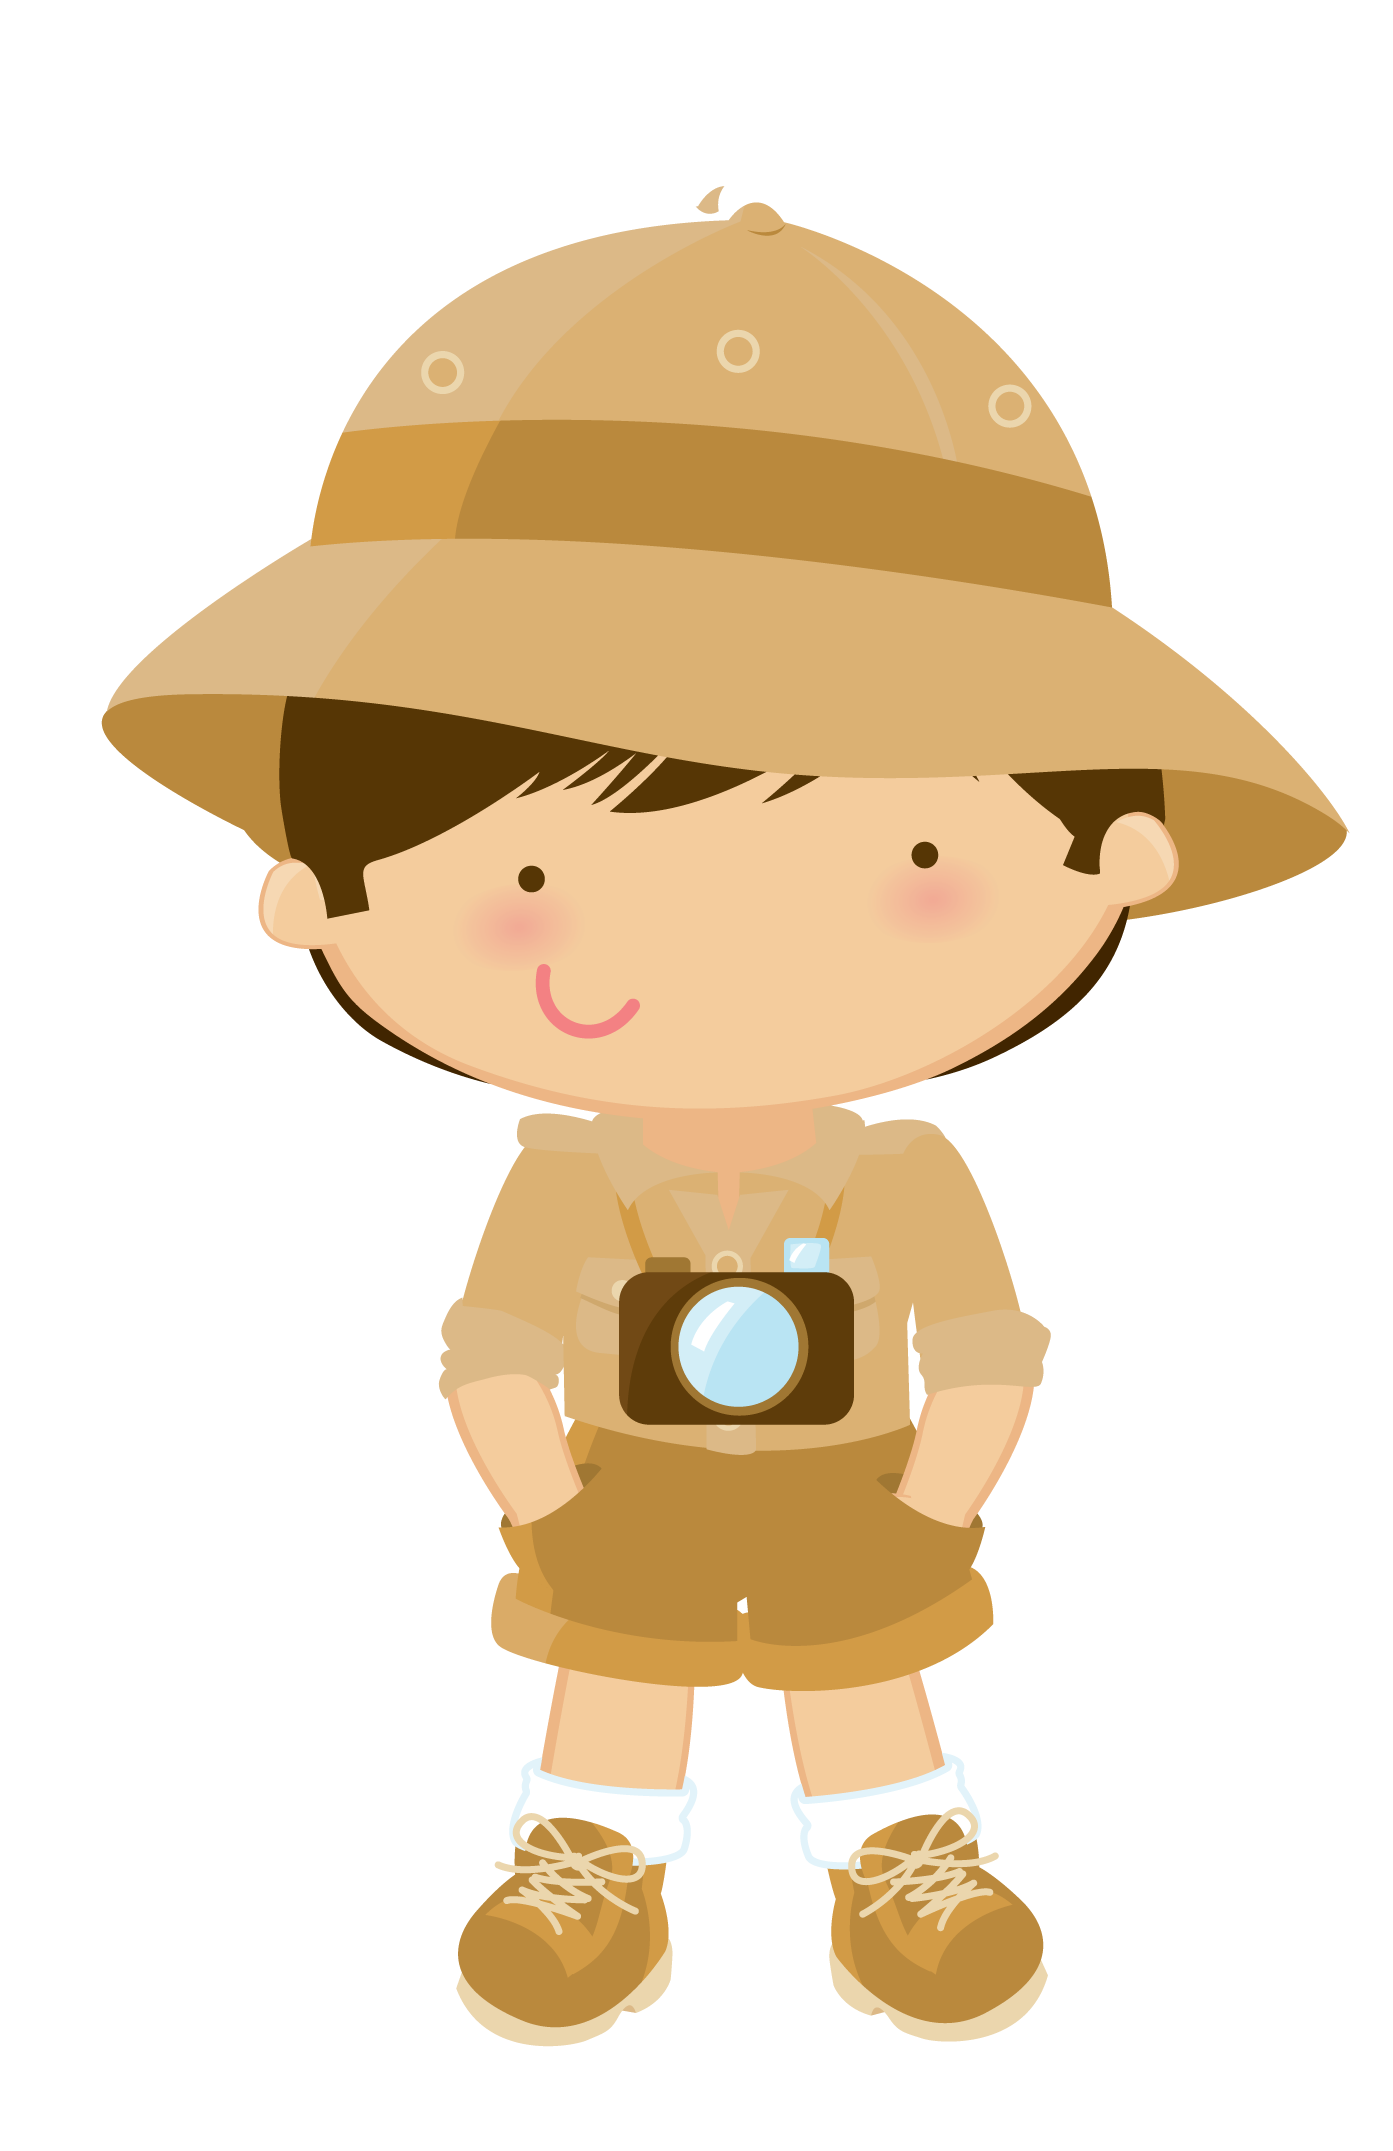 Clipart candle kid. Safari ii zwd png